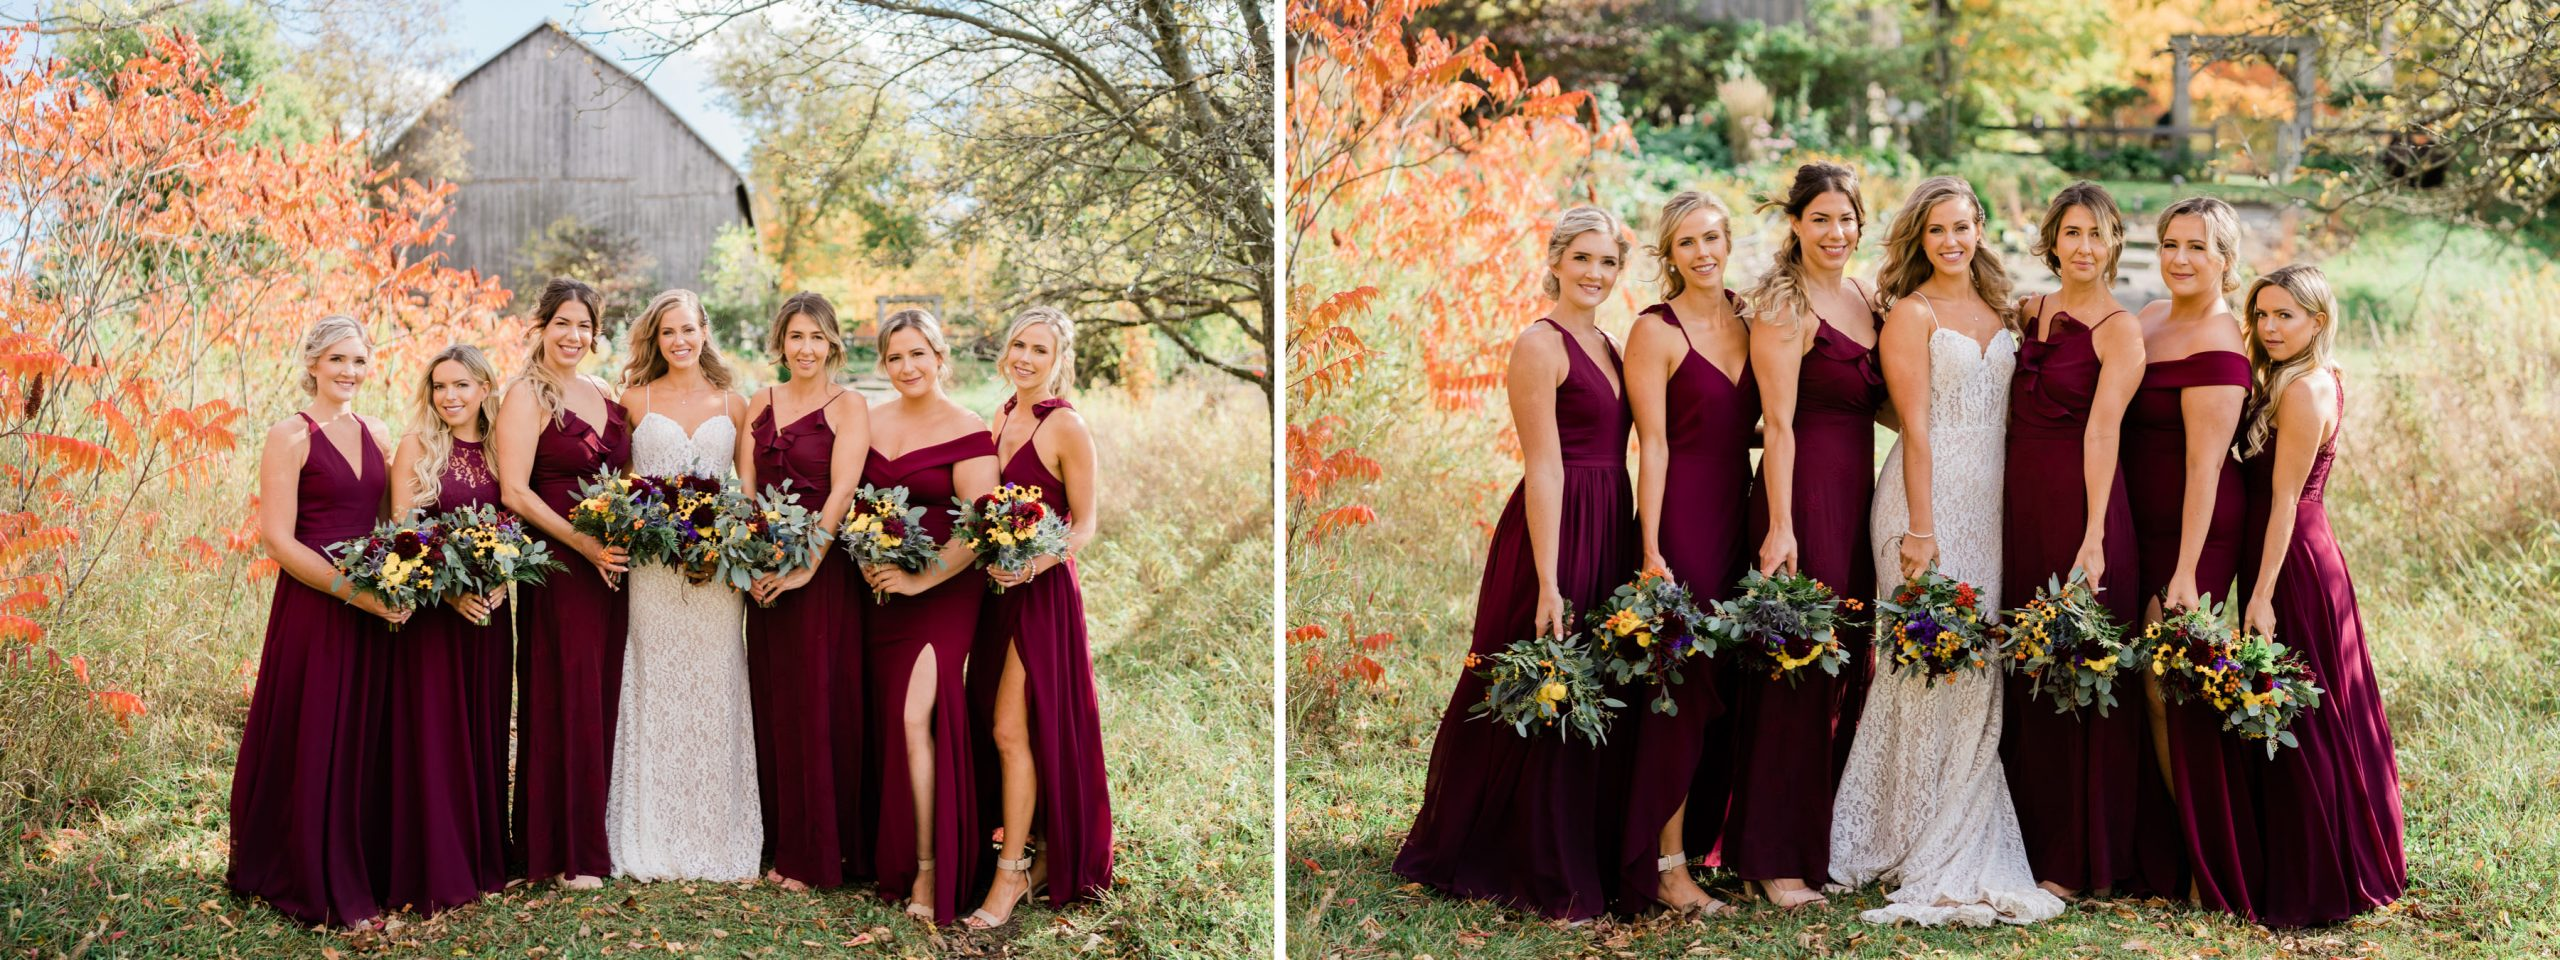 bridal party at Century Barn